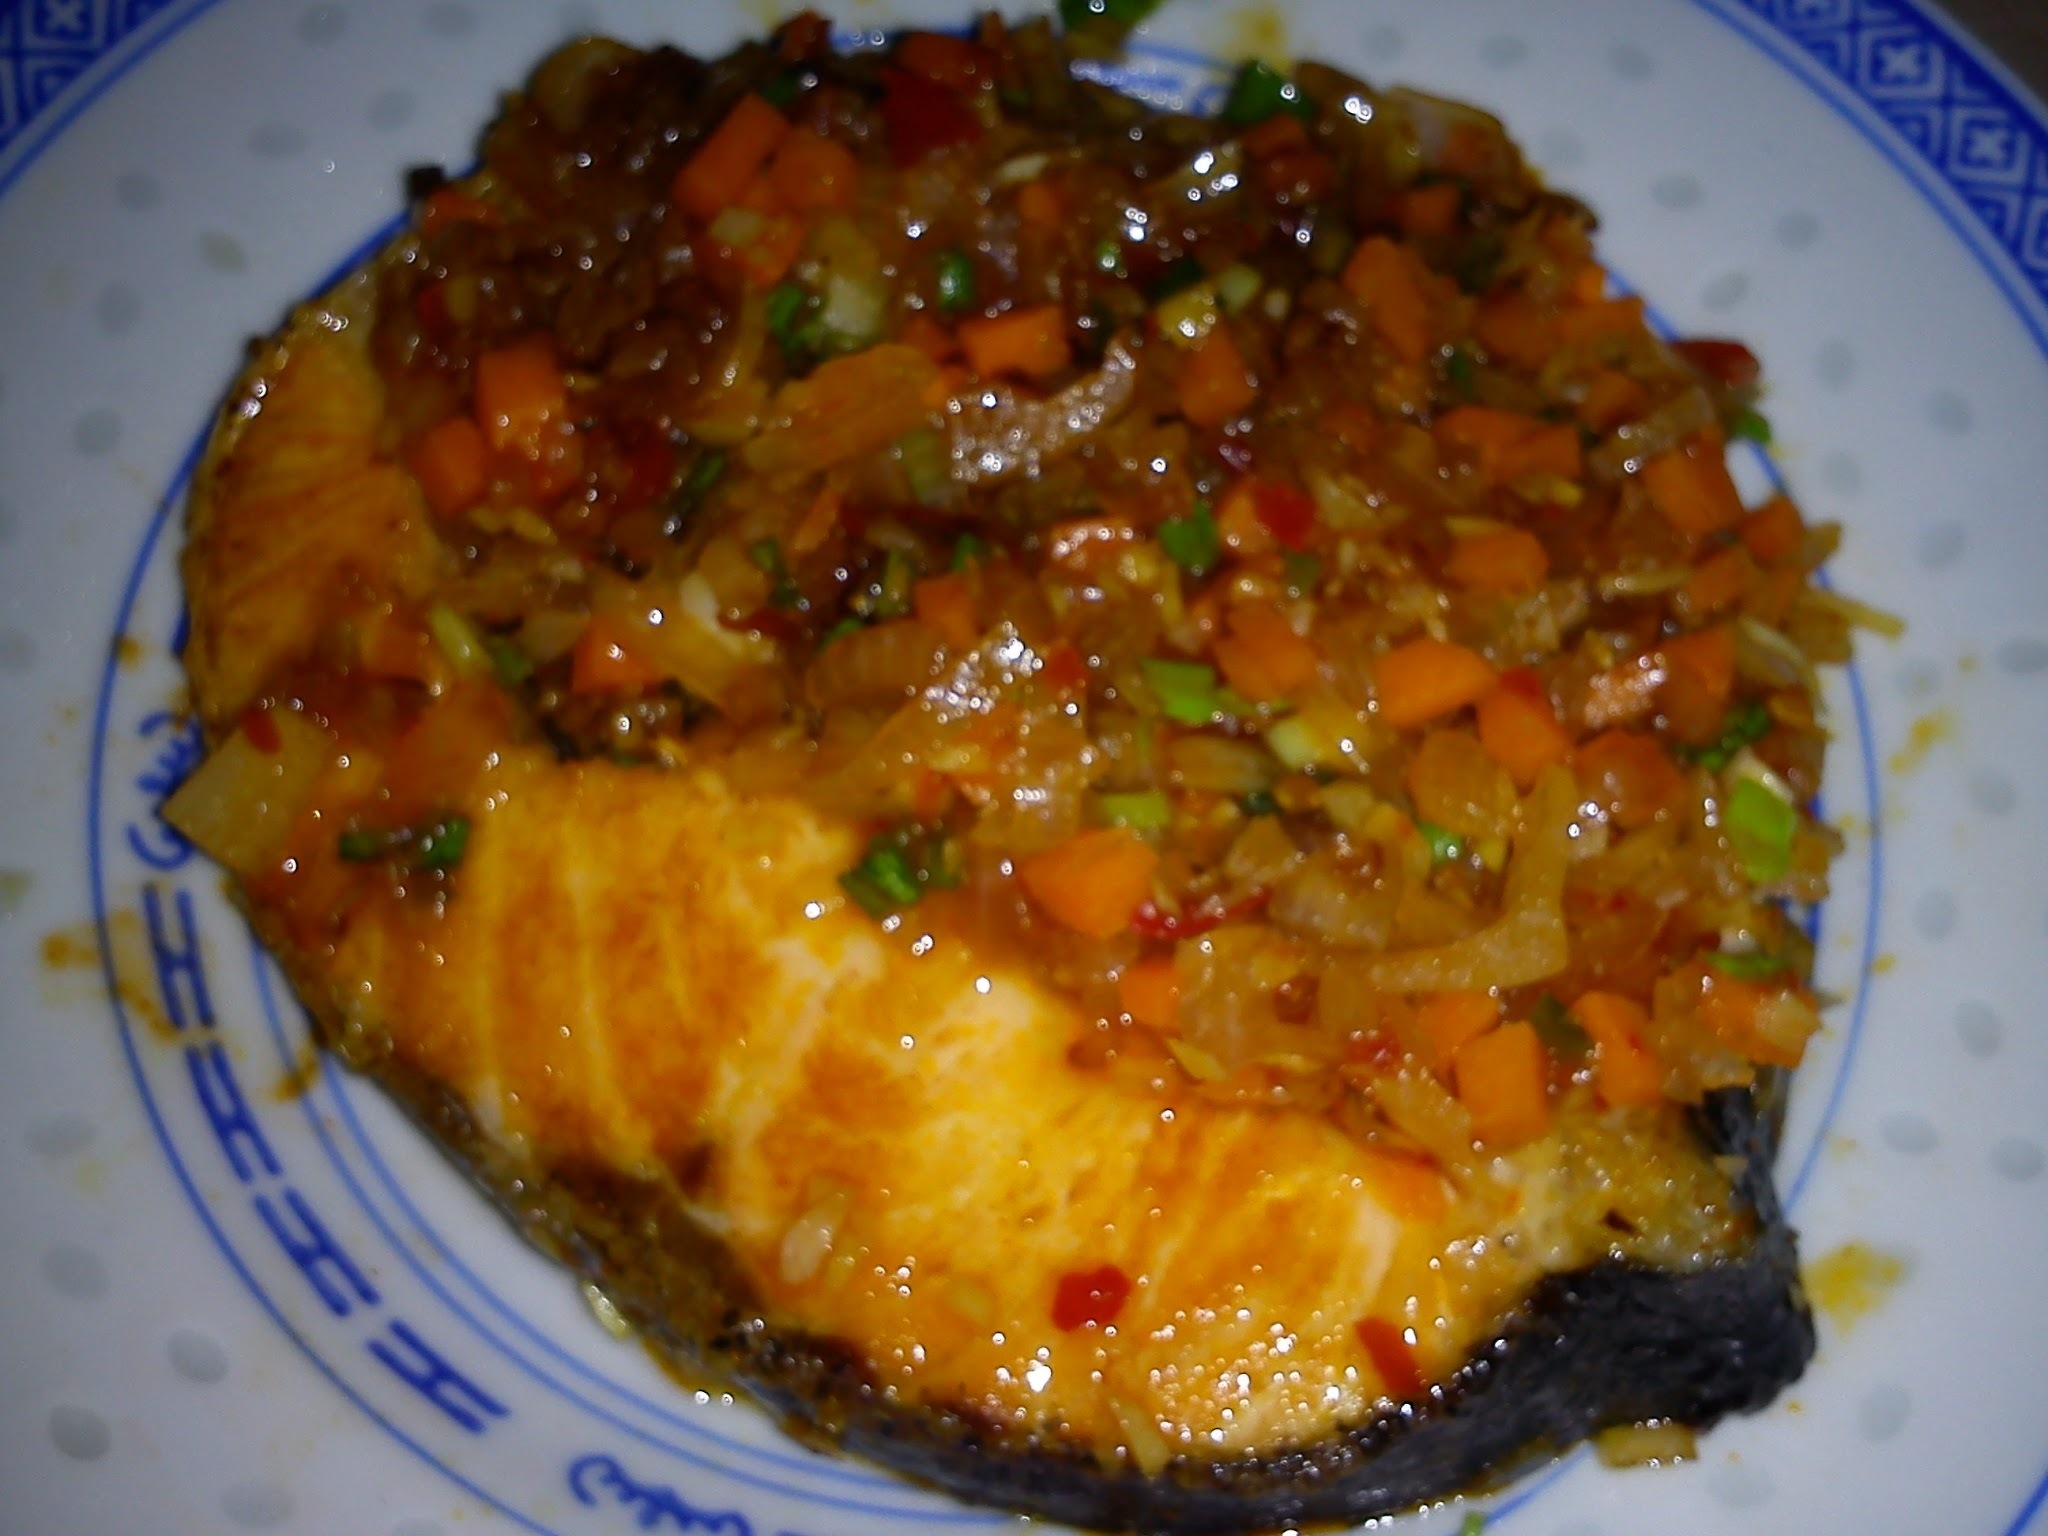 EZCR#65  - FRIED SALMON WITH FRAGRANT SAUCE